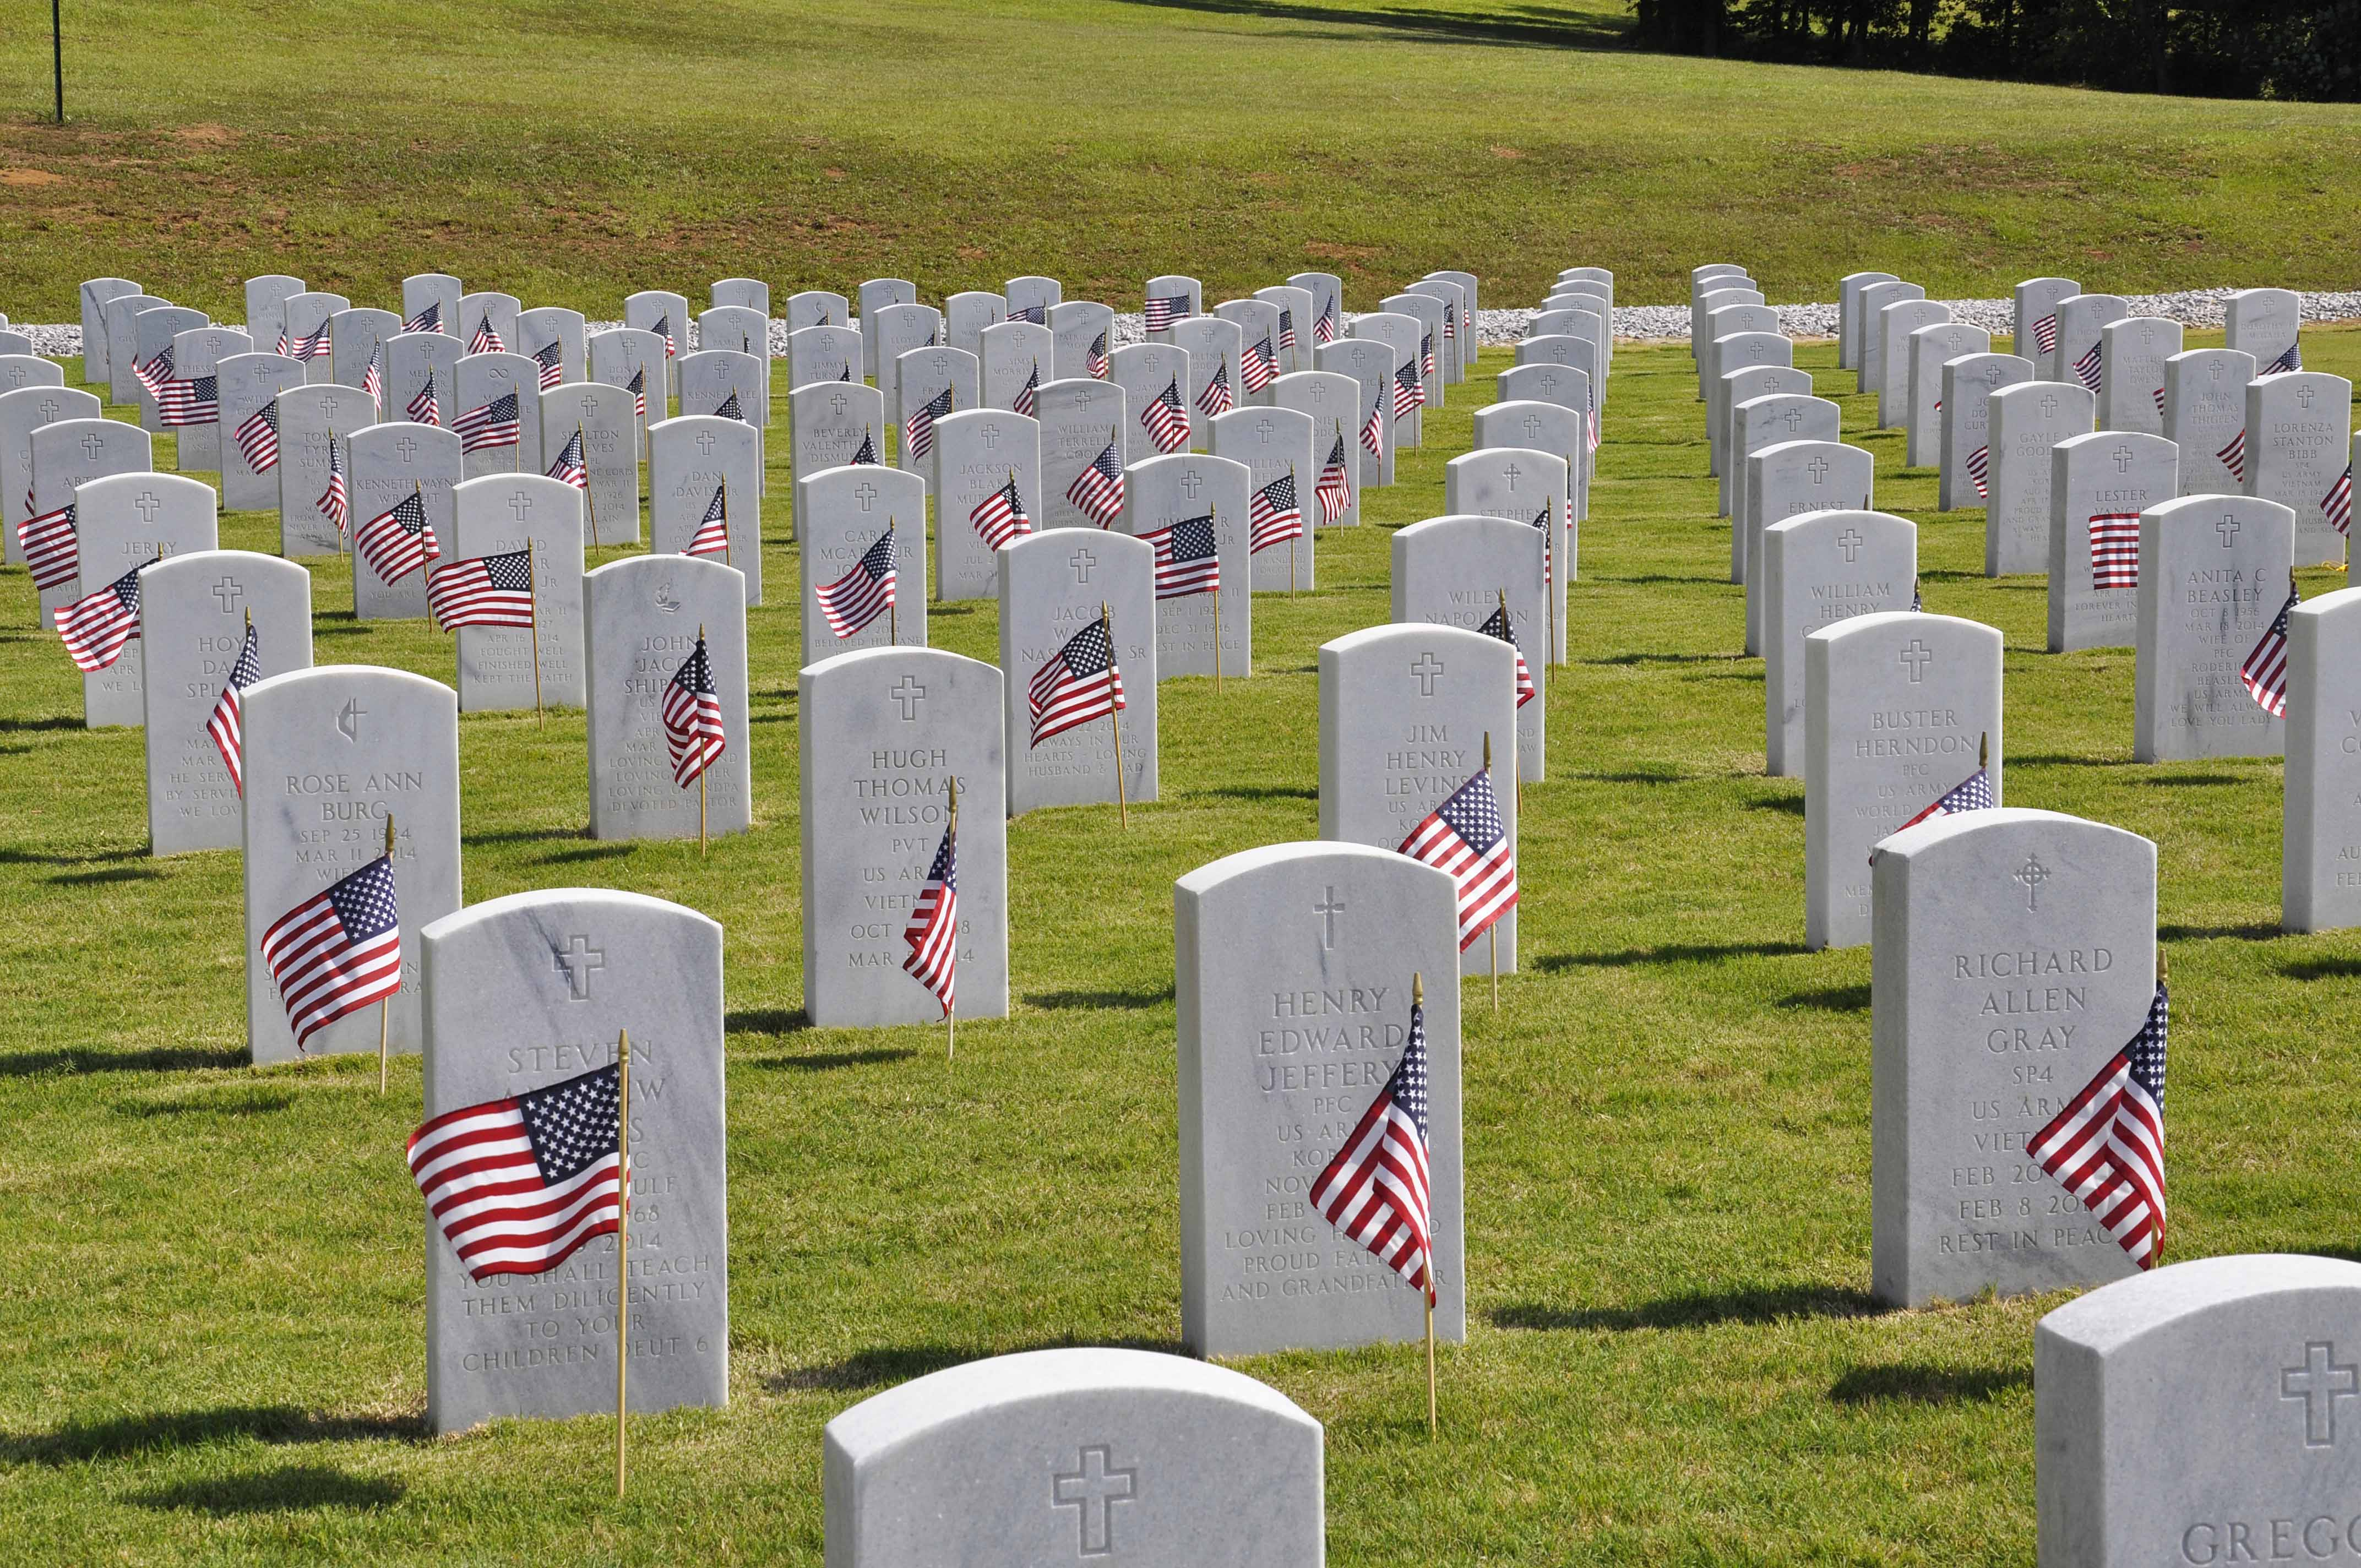 Memorial Day at the Alabama National Cemetery